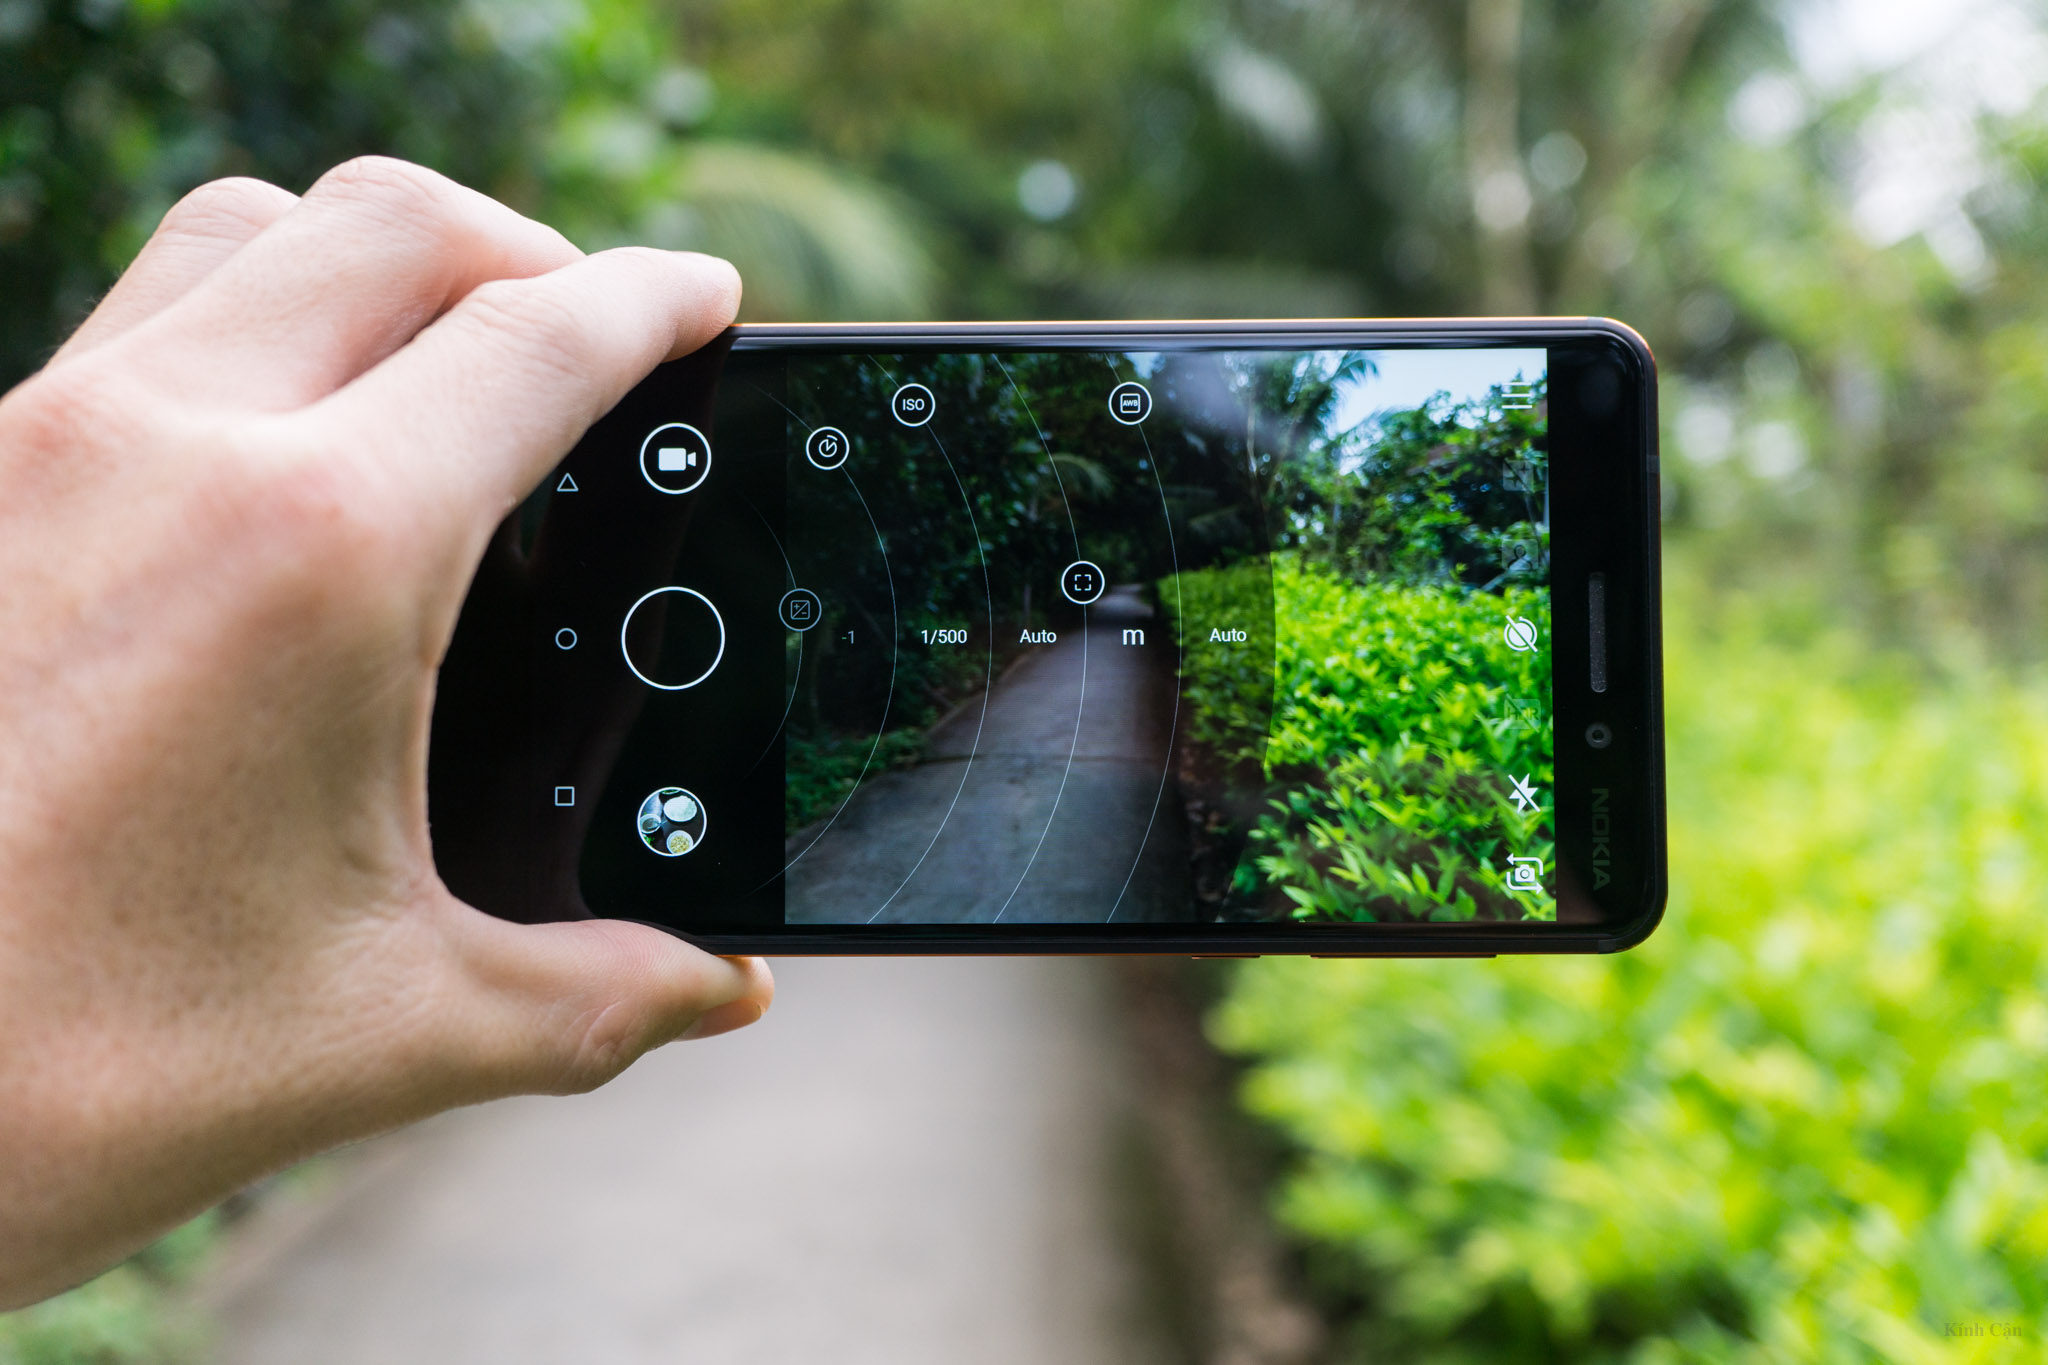 Android P Nokia 6 mới-4.jpg